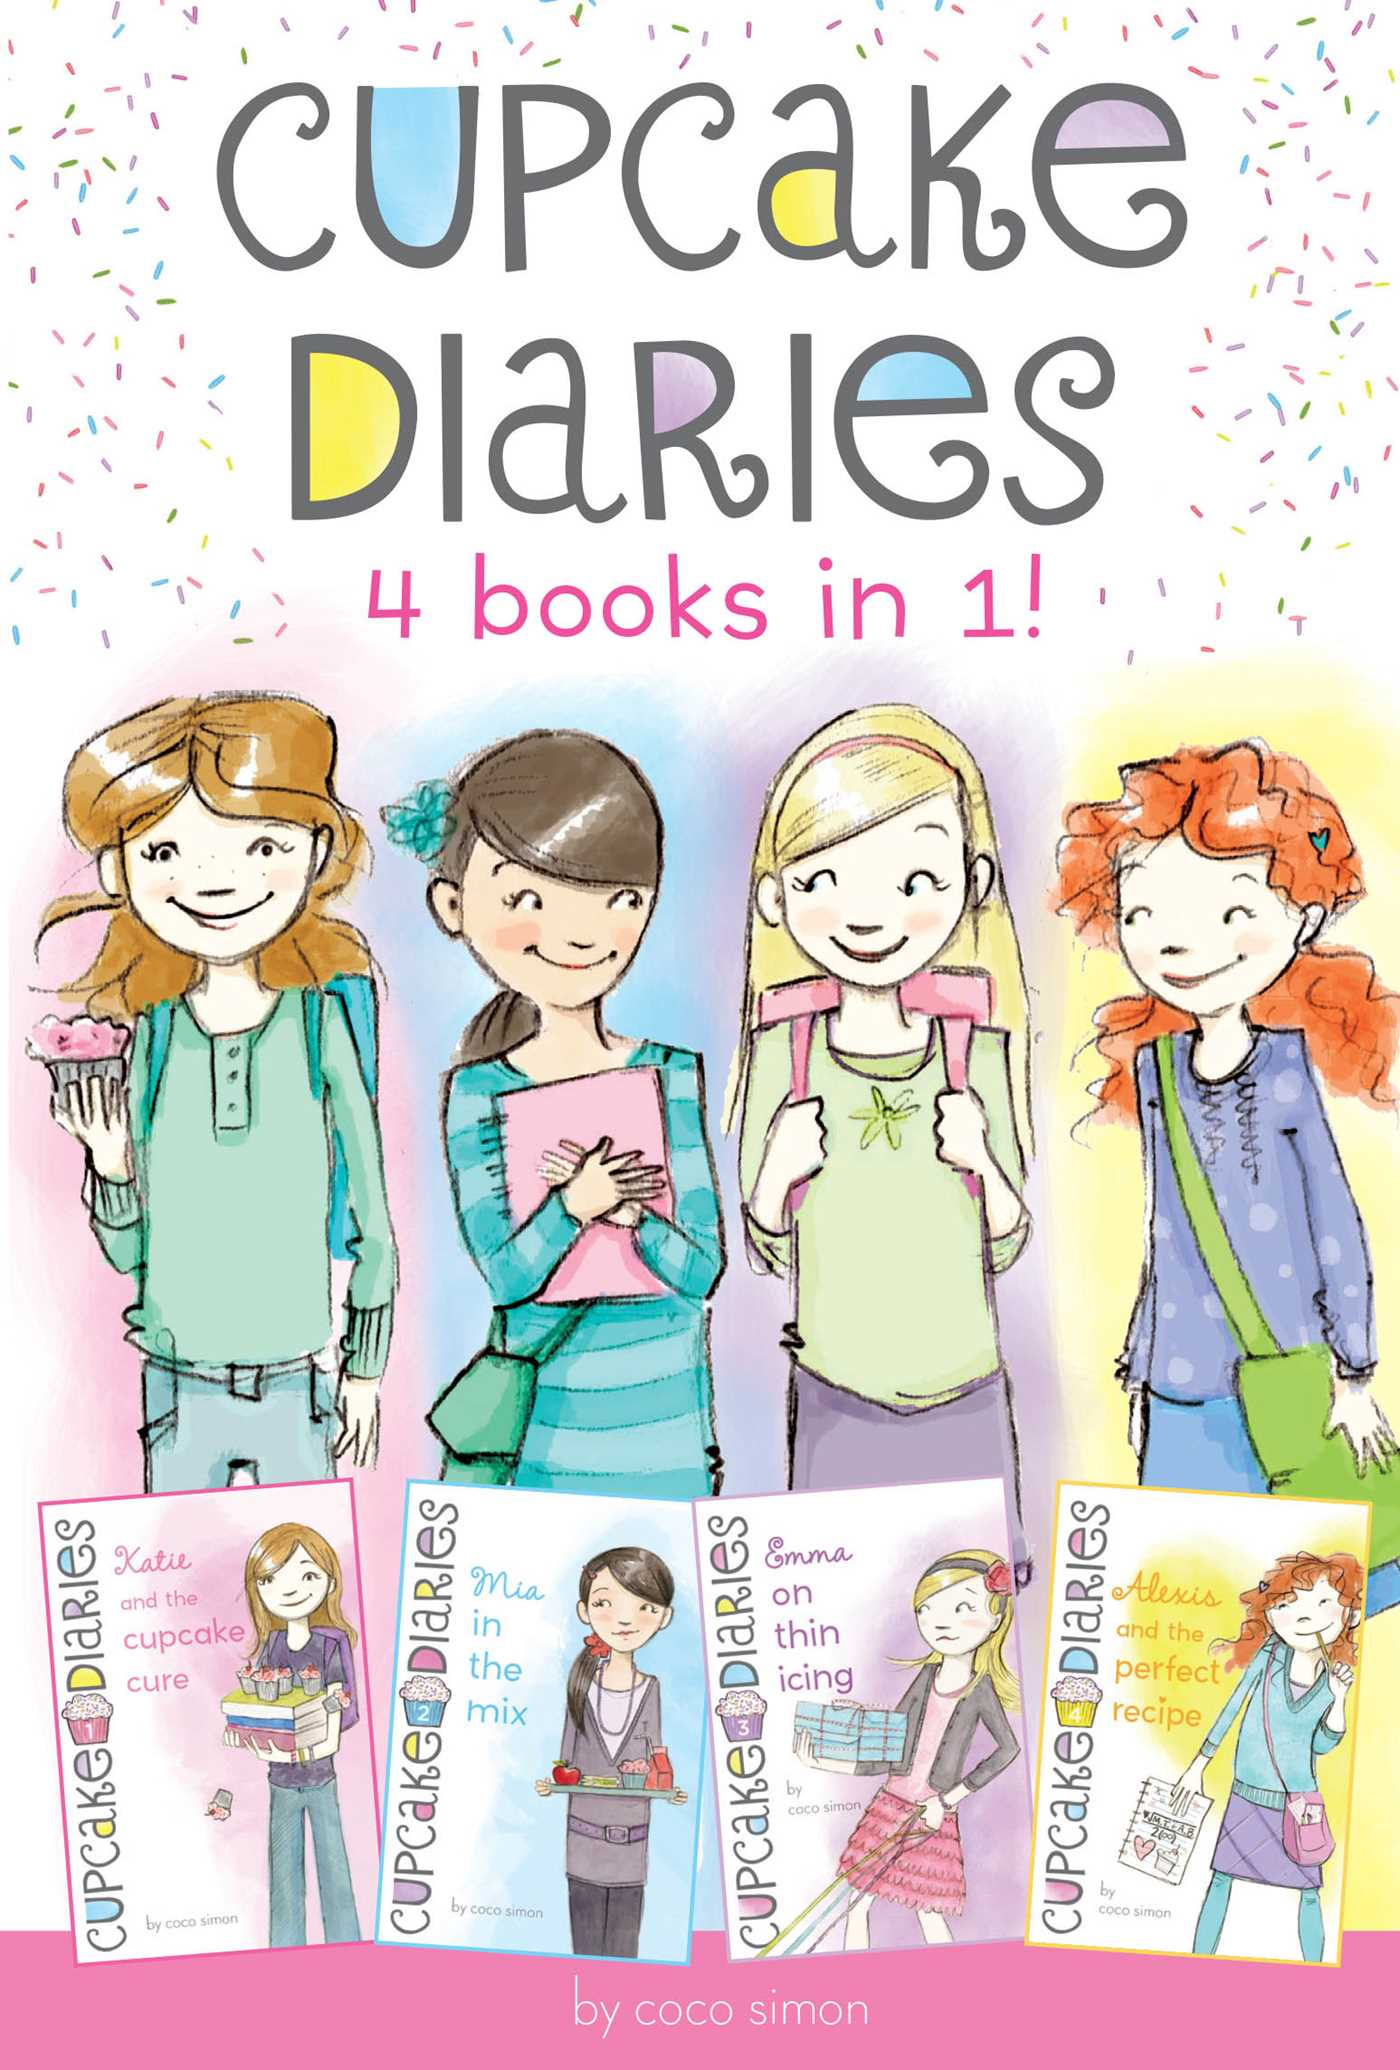 cupcake diaries Find great deals on ebay for cupcake diaries in books for children and young adults shop with confidence.